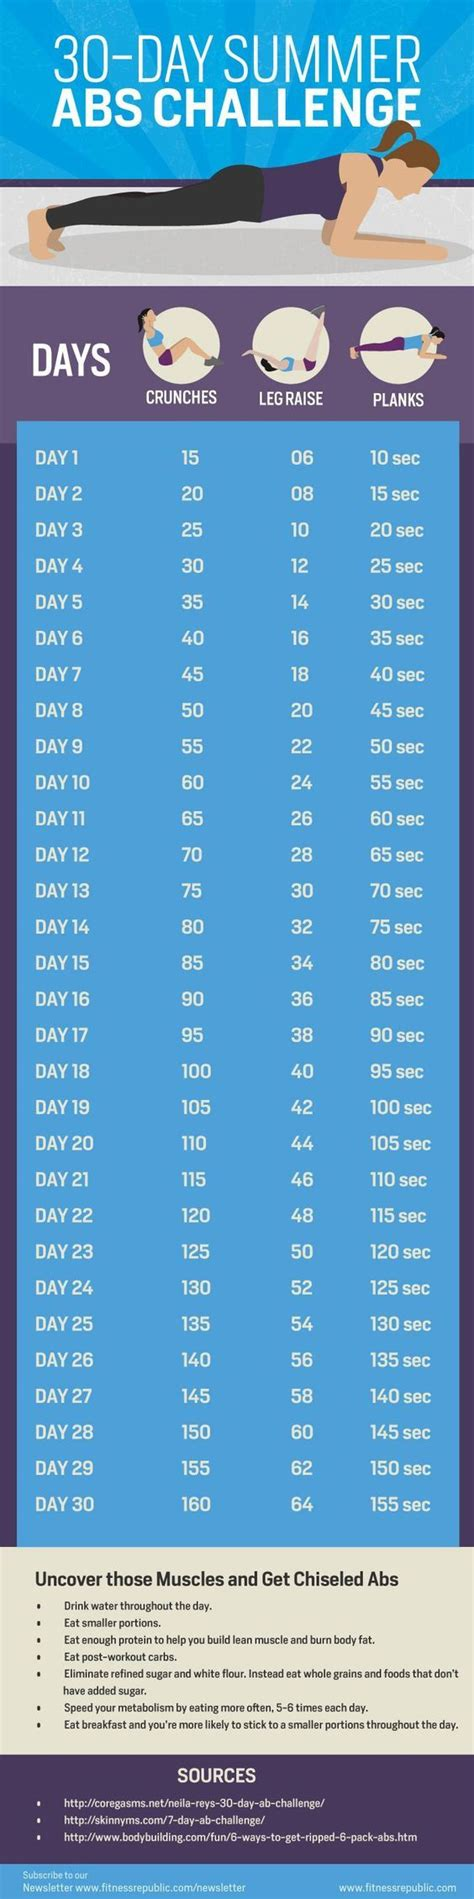 30 day abs challenge chart 30 day summer abs challenge pictures photos and images